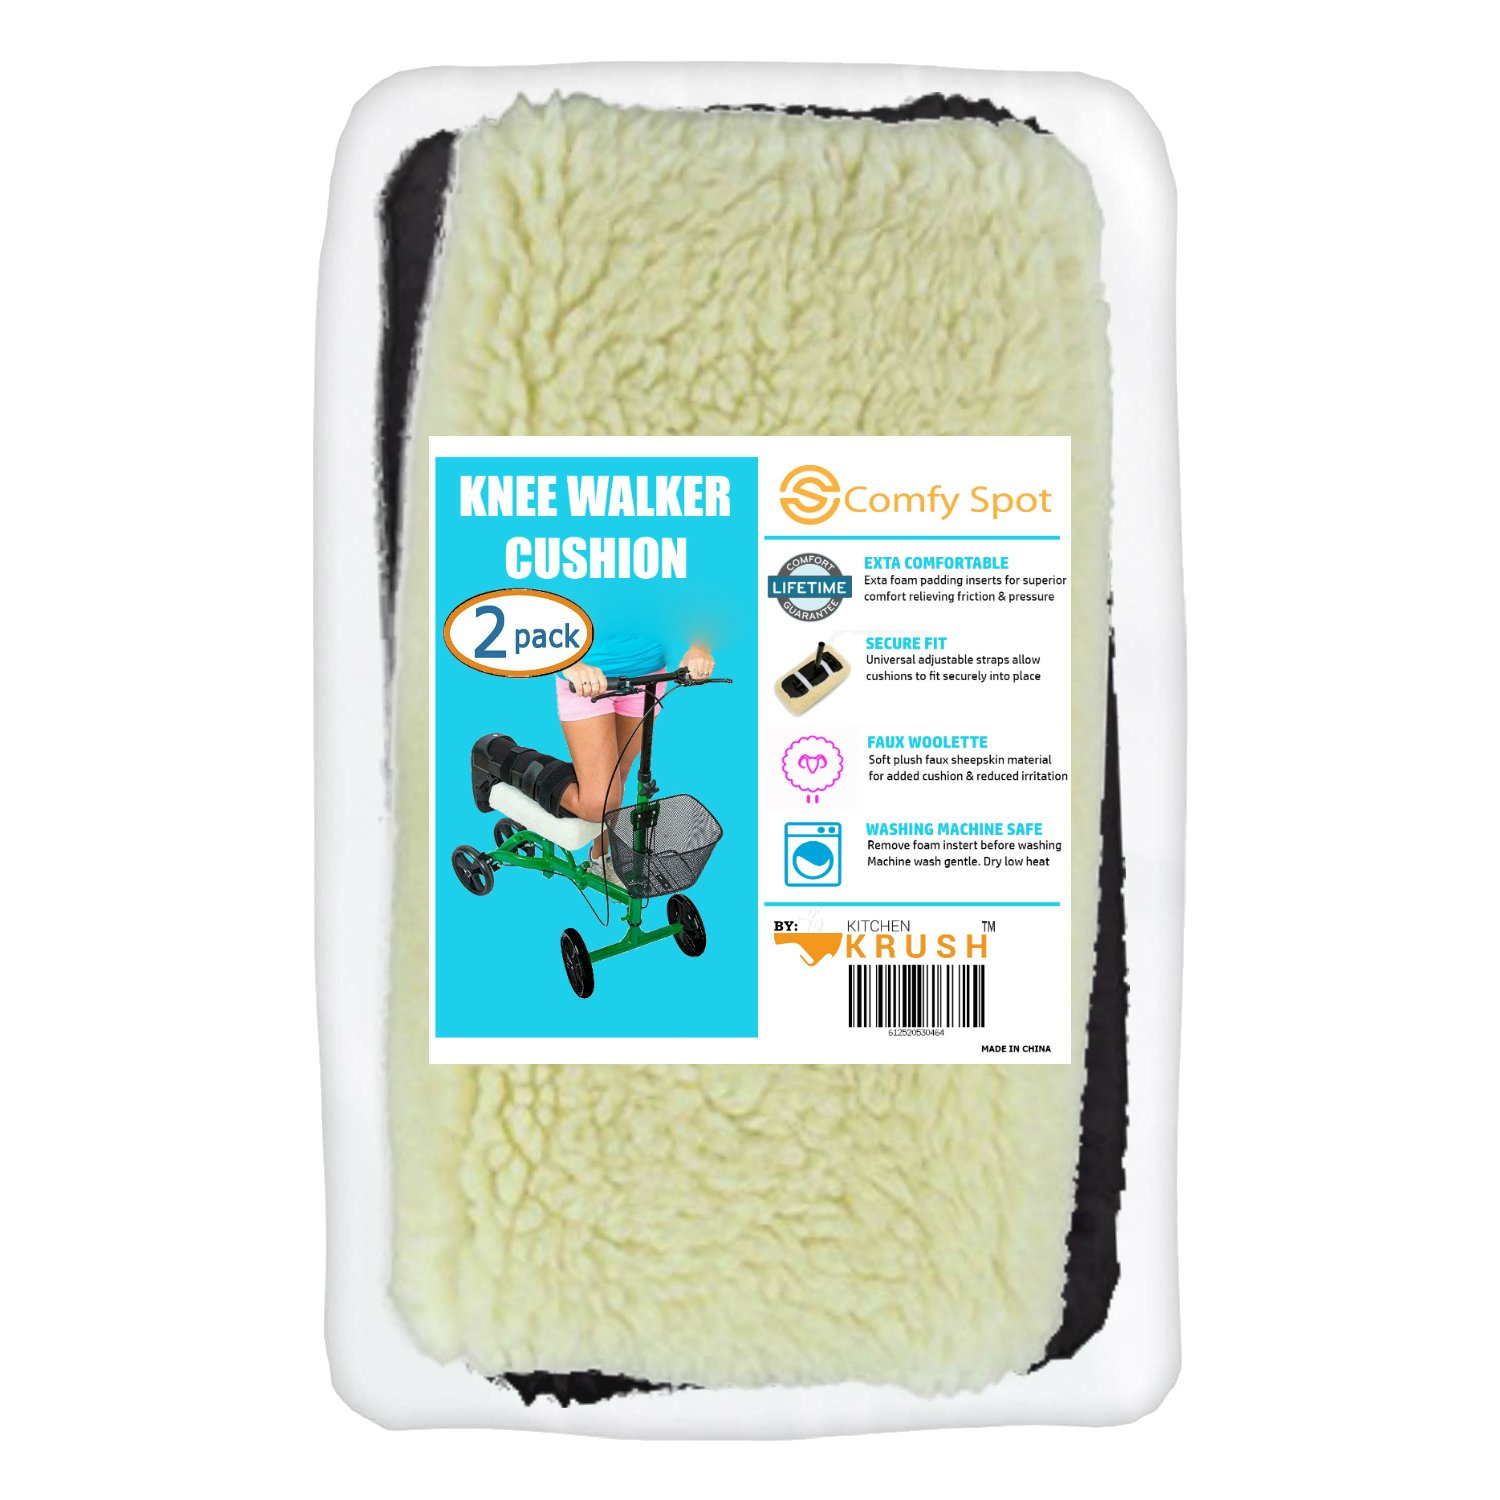 Buy Kitchen Krush Knee Walker Cushion Covers 2 Pack For Knee Scooter ...